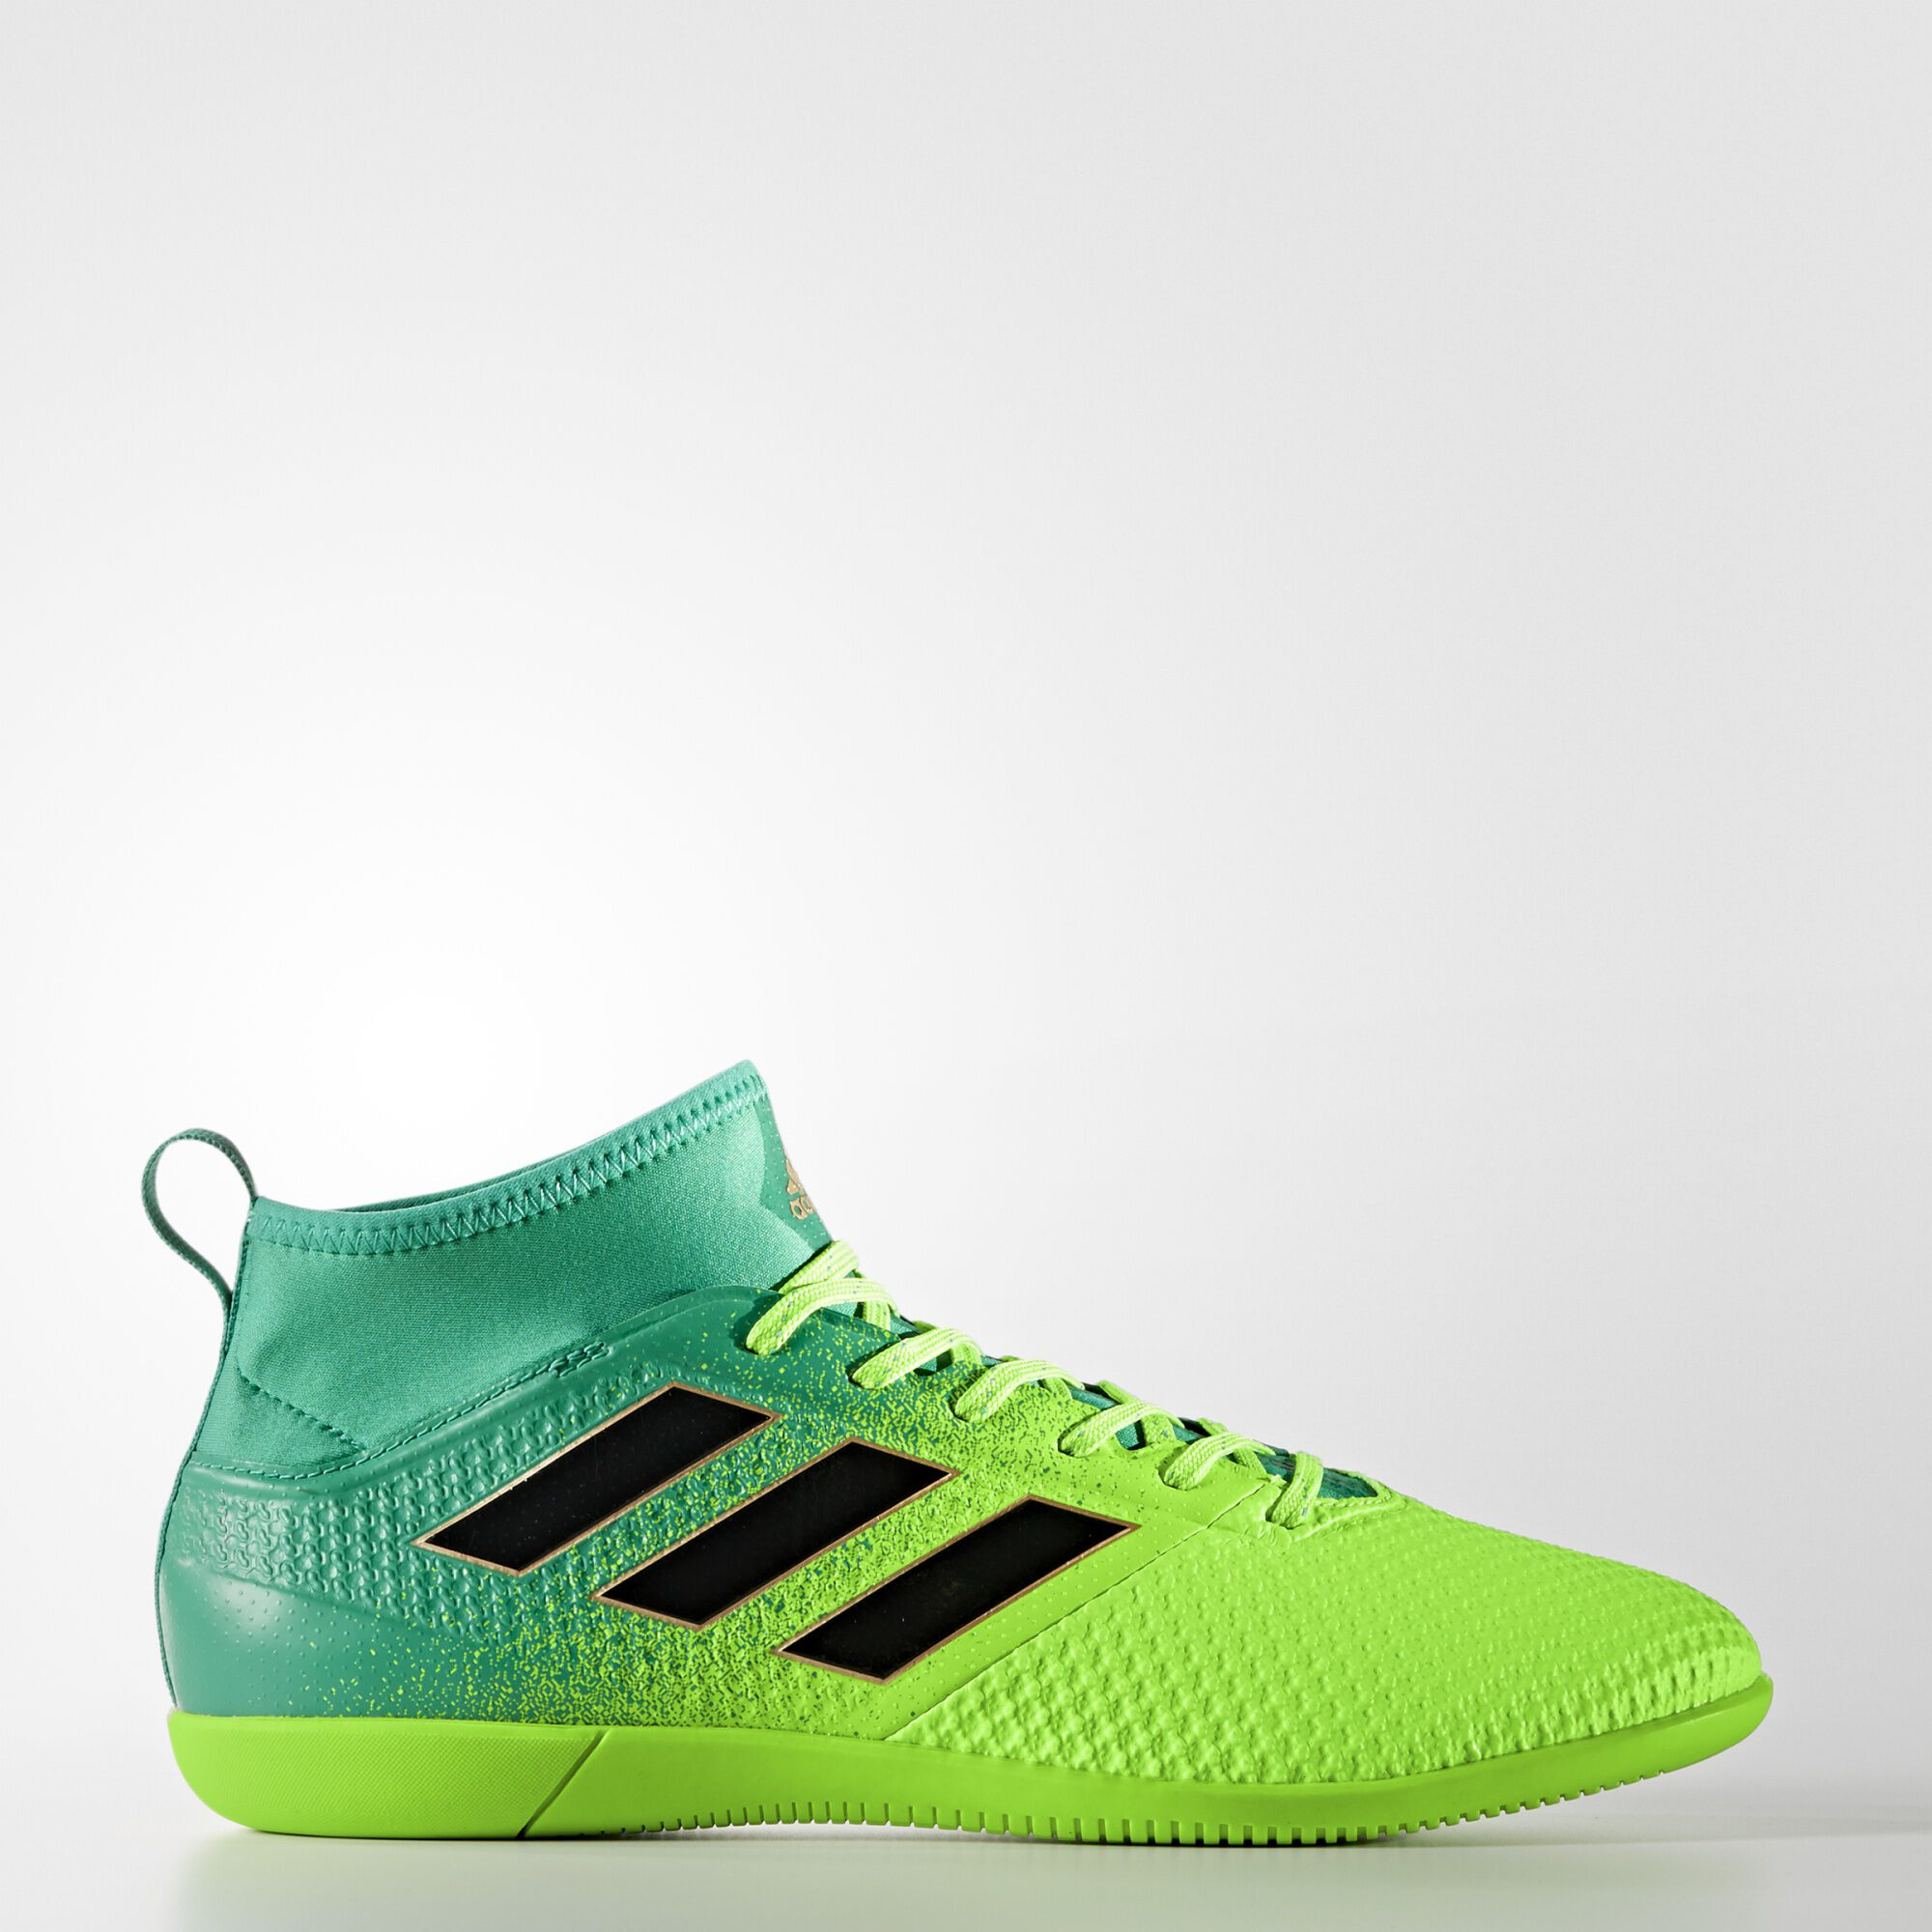 Adidas Shoes Soccer 2017